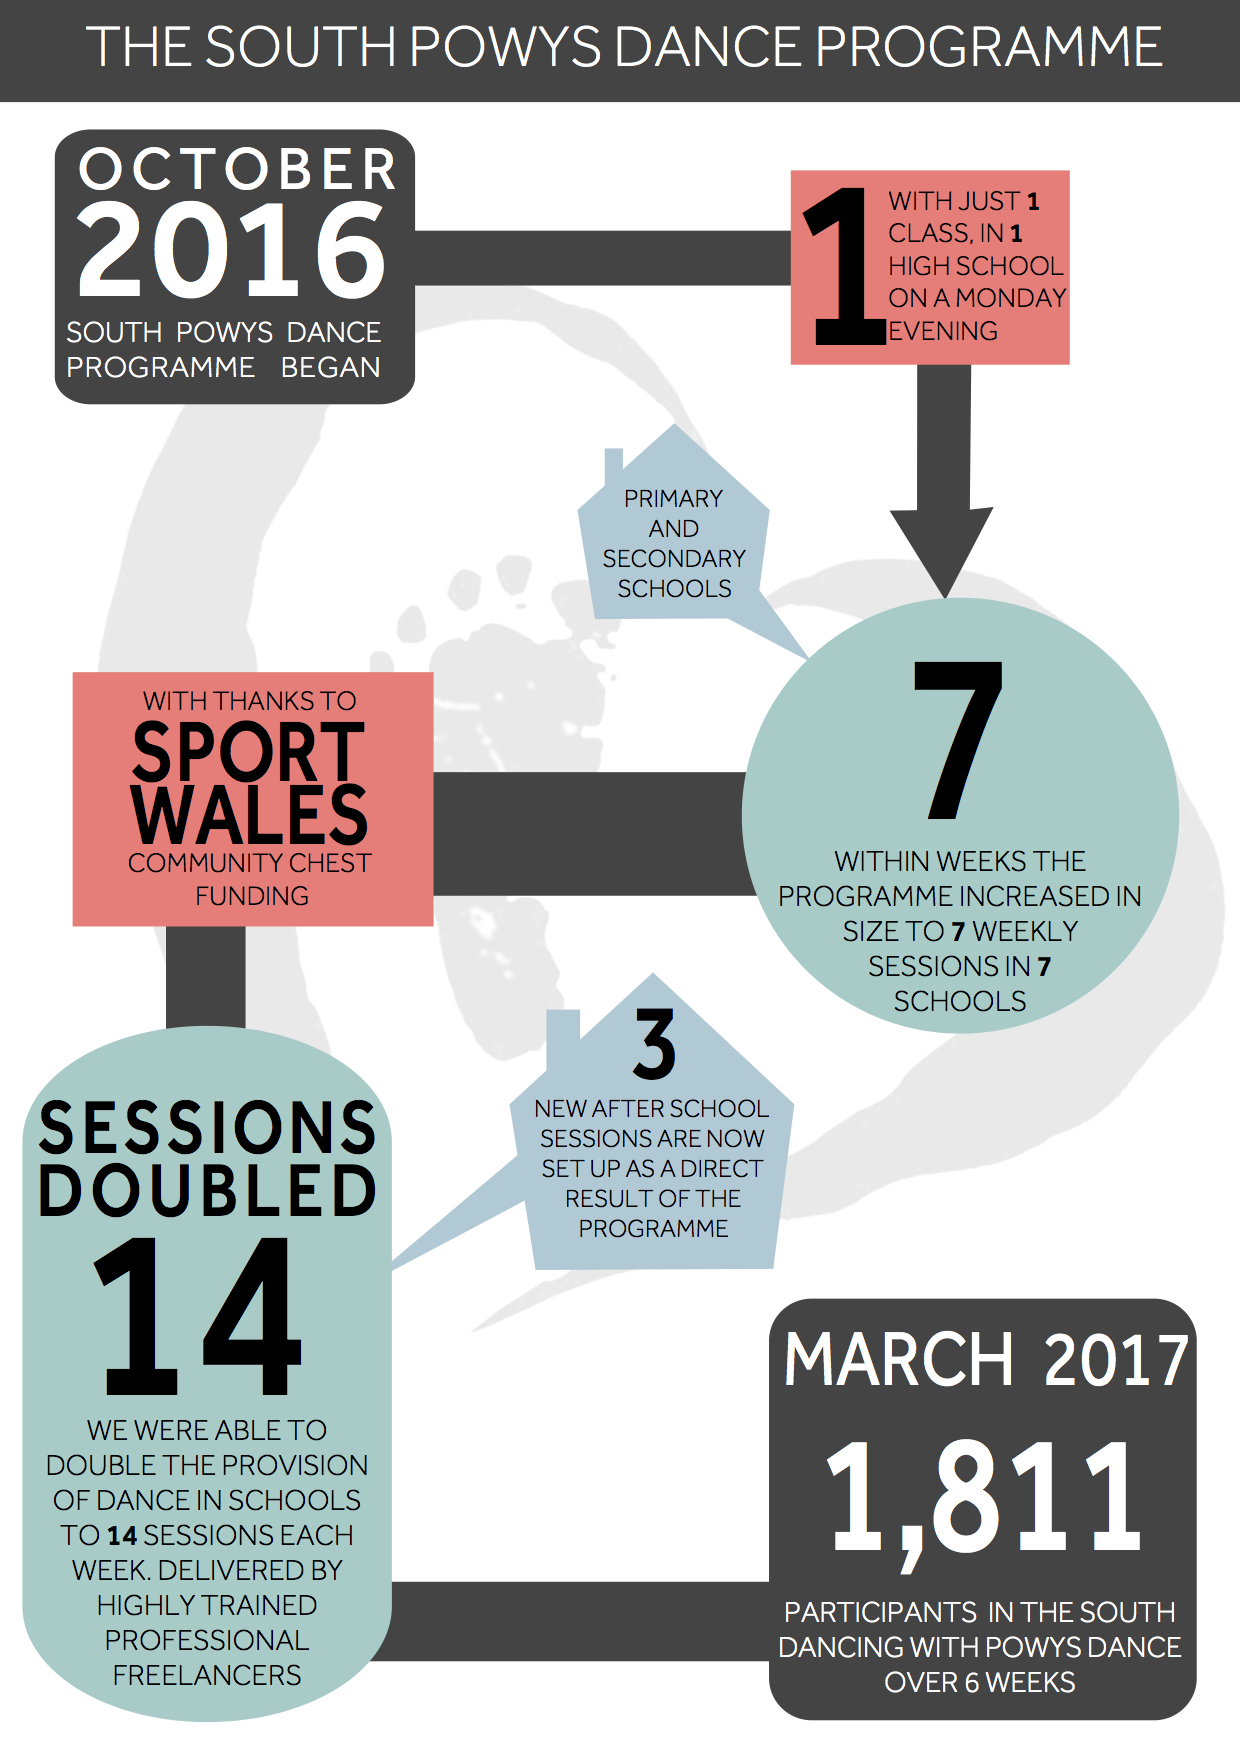 A breakdown of how the South Powys Dance programme has developed.